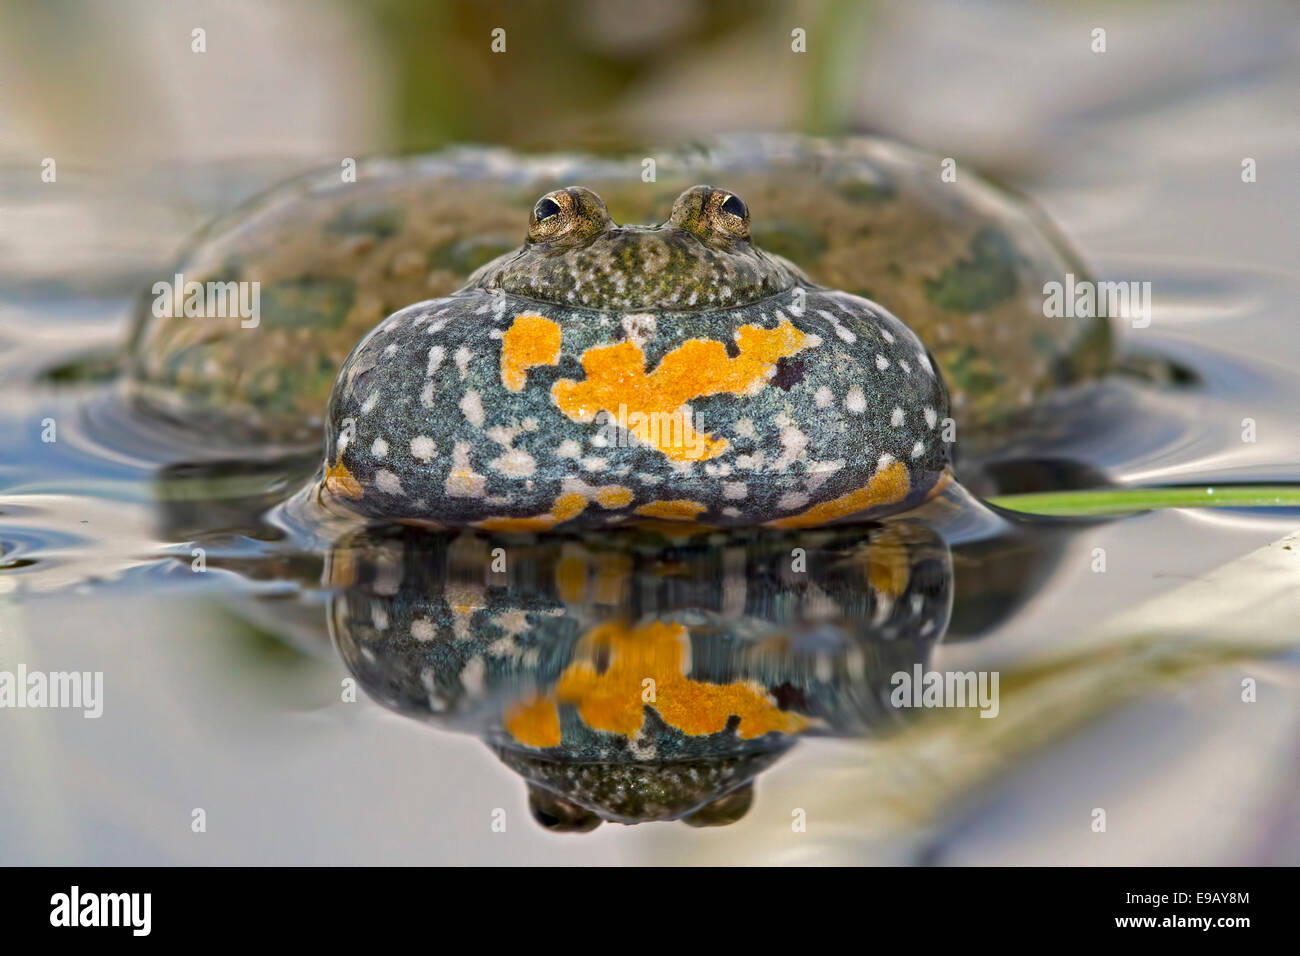 Fire-bellied Toad or Firebelly Toad (Bombina bombina), croaking, reflection, seepage water, Middle Elbe, Saxony - Stock Image